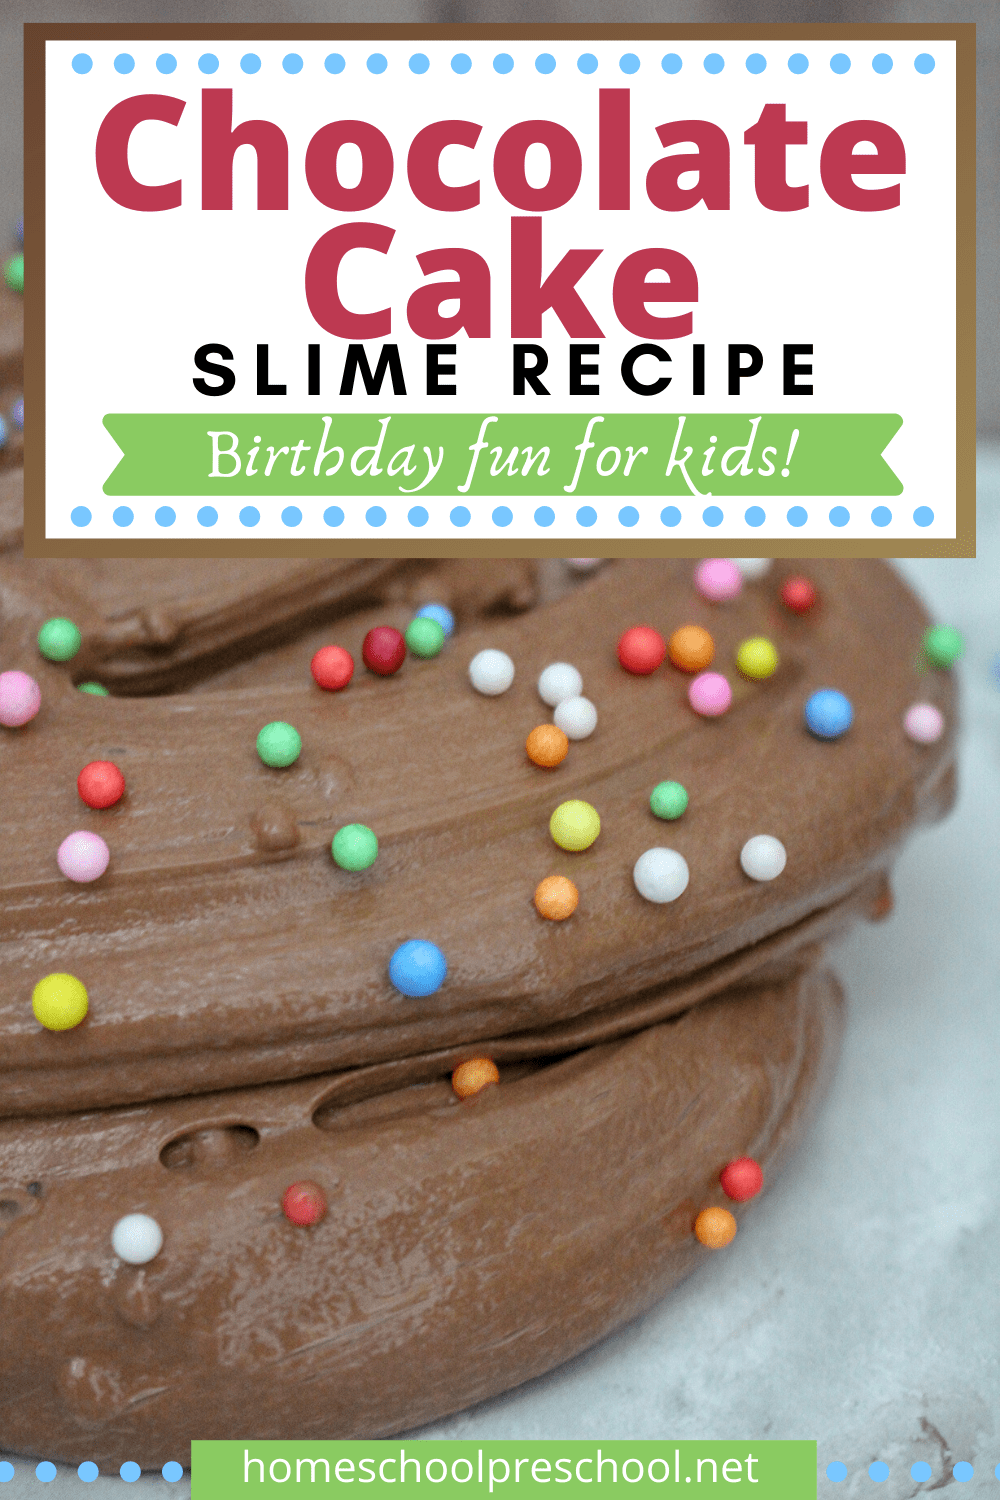 You won't believe how simple it is to whip up a batch of slime with this birthday cake slime recipe! It's perfect for birthday parties and playdates.